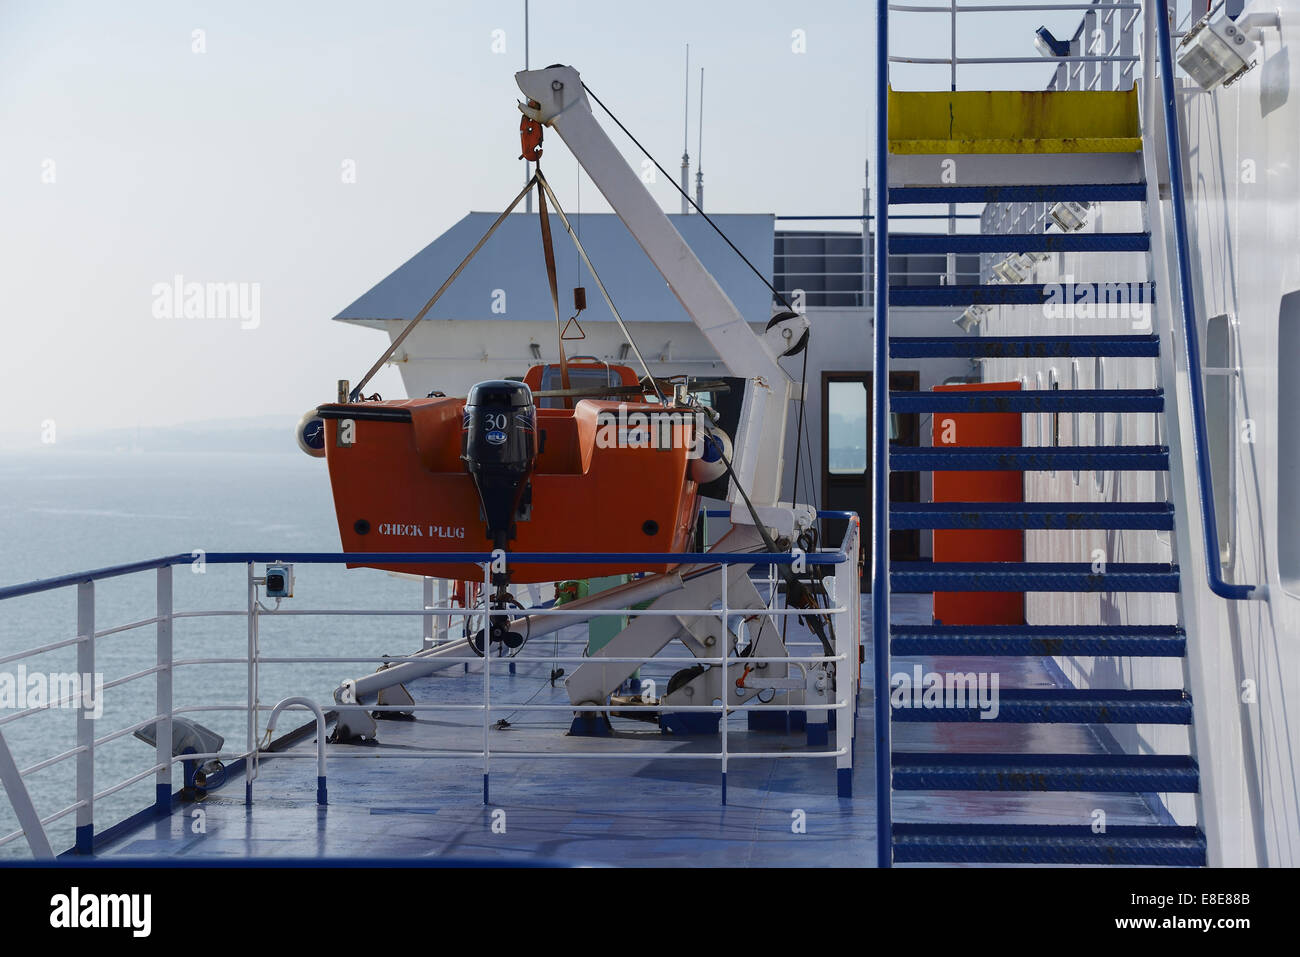 Rescue boat on the deck of the Stena Mersey Irish Sea ferry - Stock Image